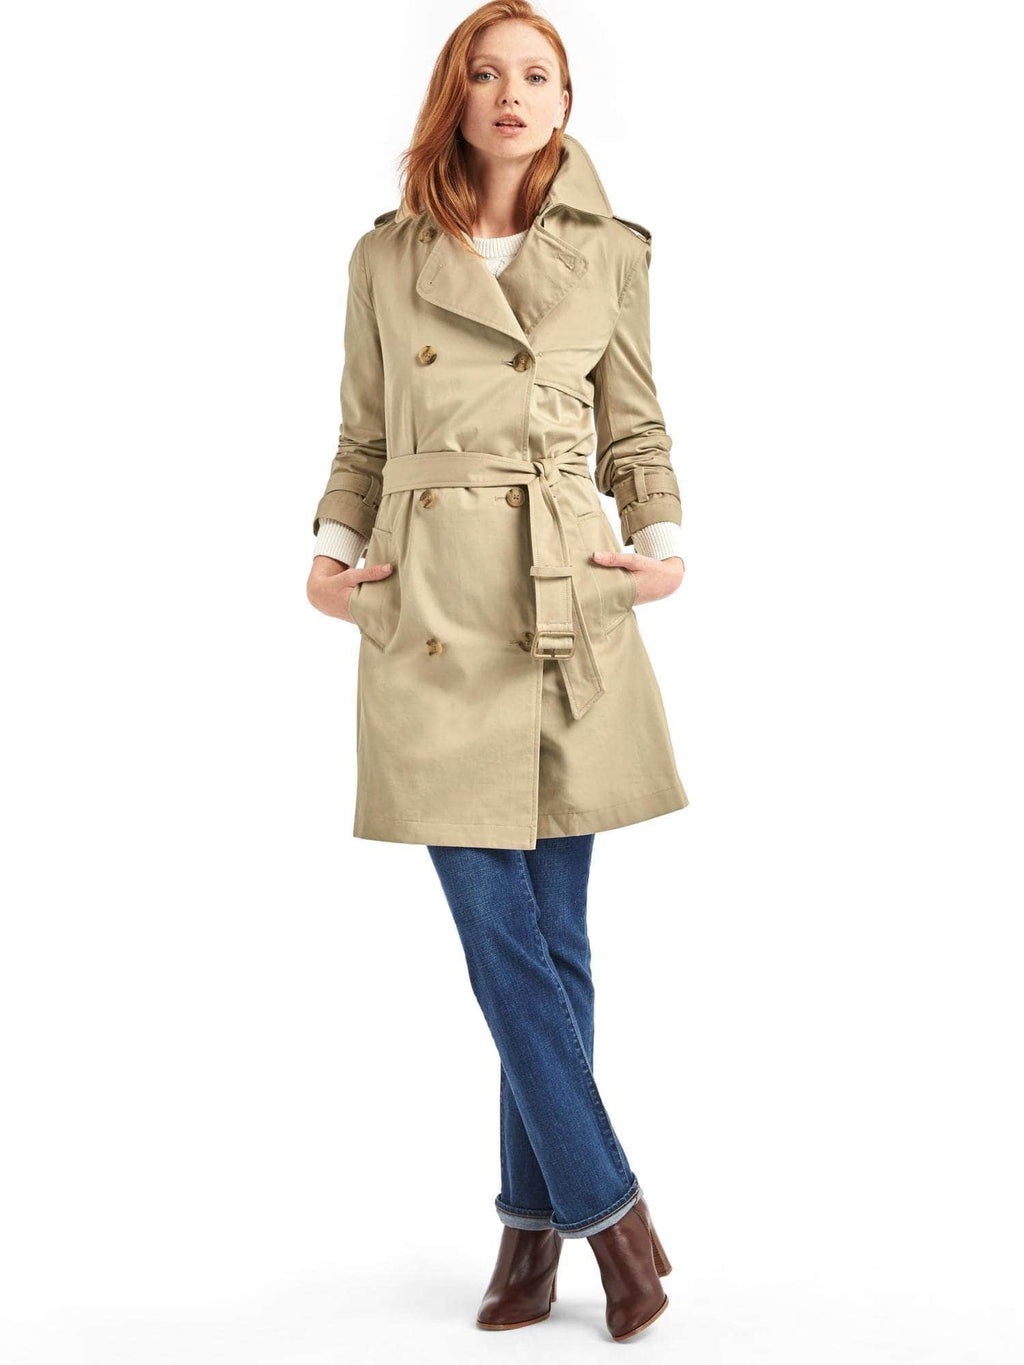 Gap Beige Trench Coat Size S